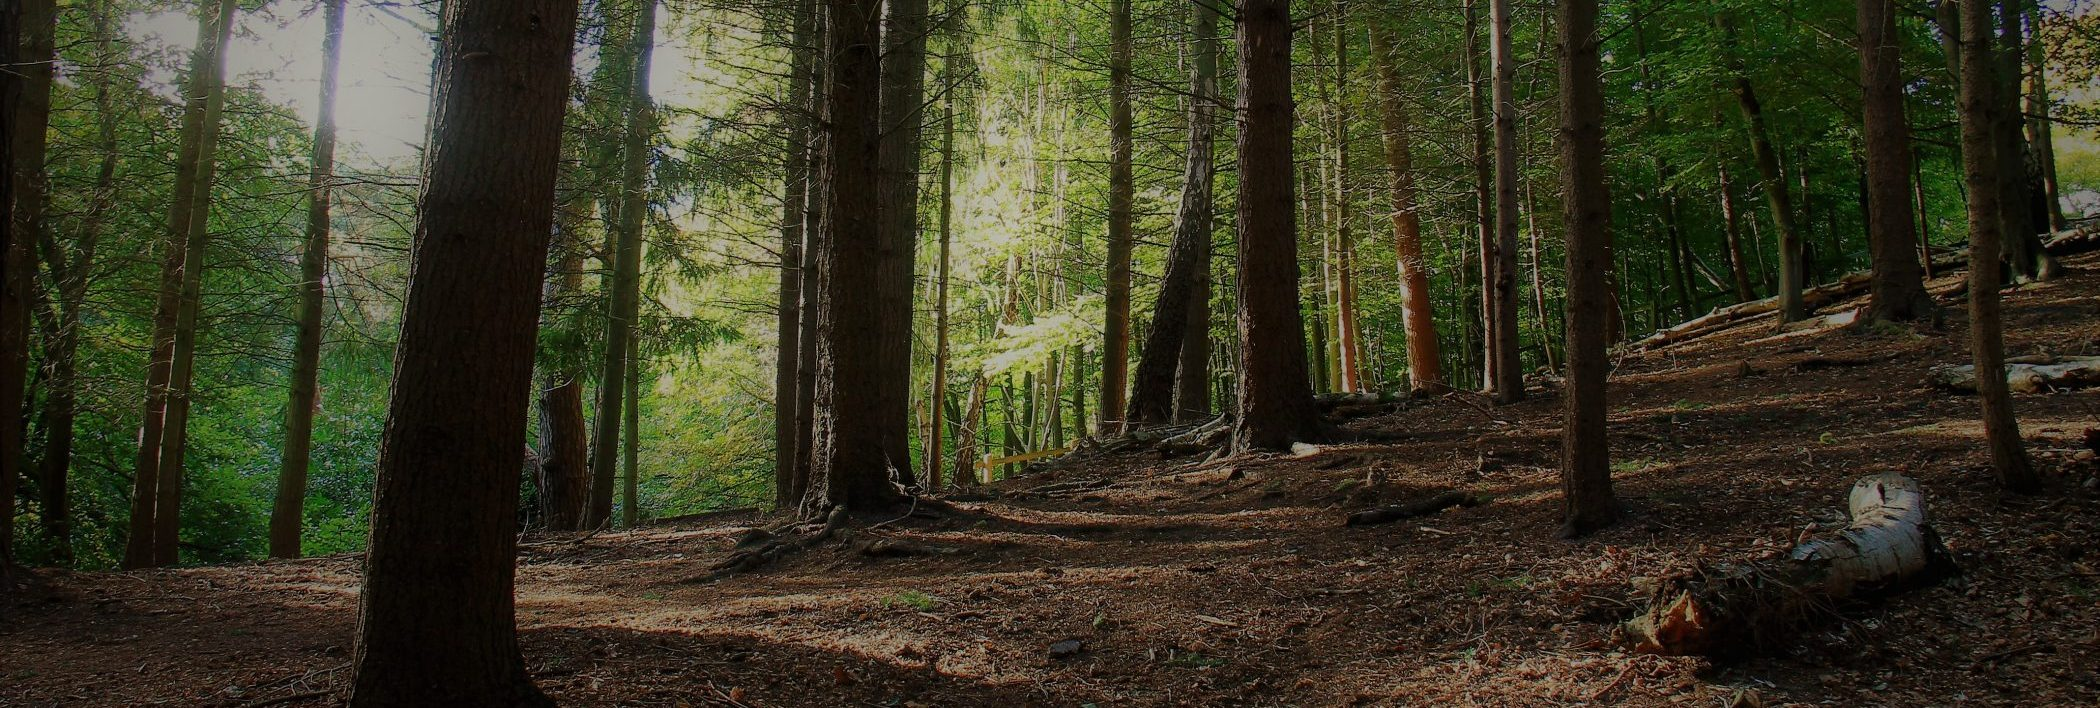 Ancestral Woods/woodland trees photograph for inspiration